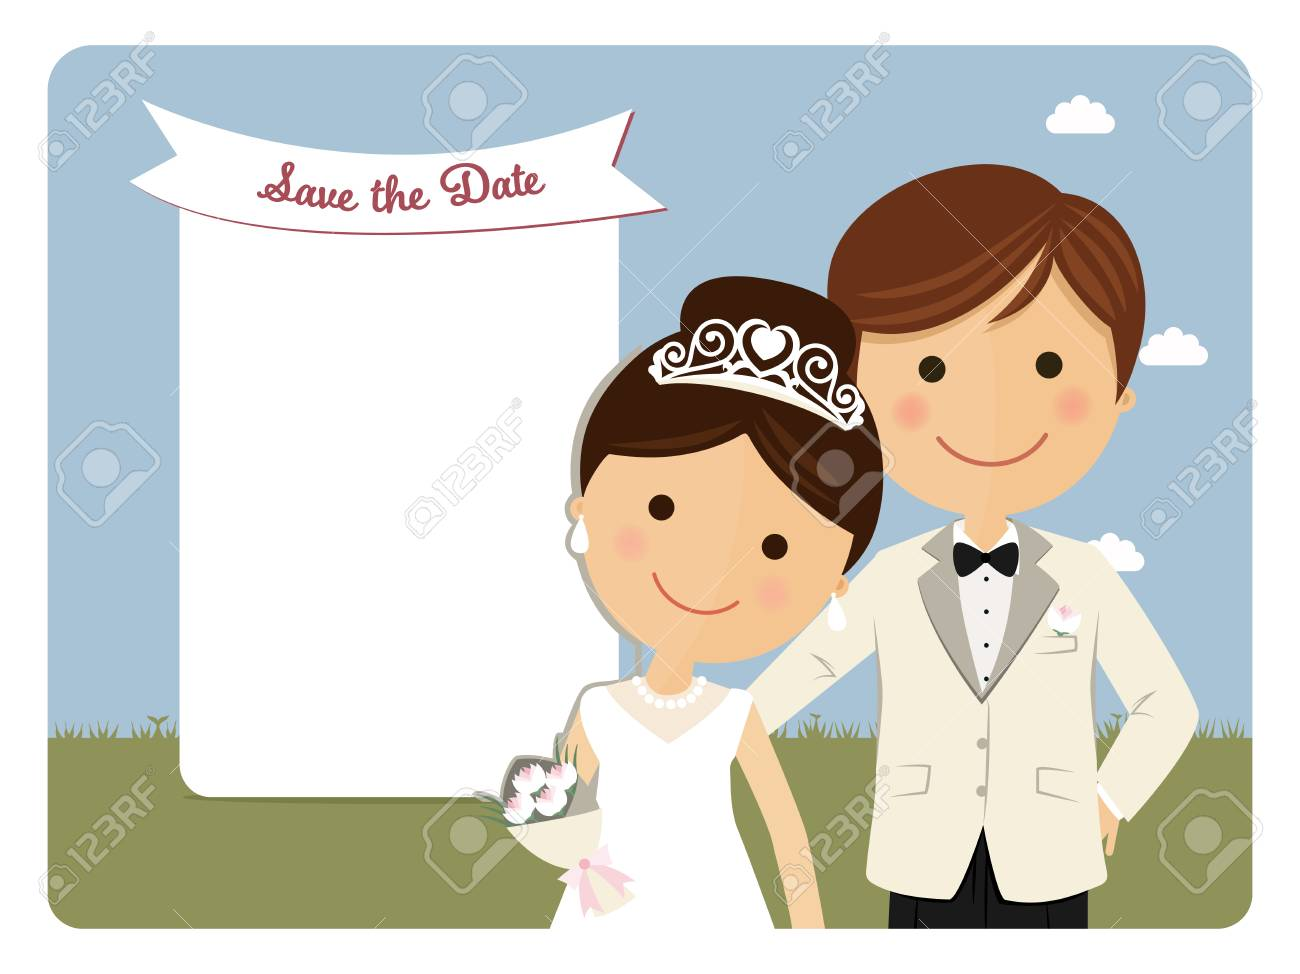 Princely style couple foreground for wedding invitation on blue background - 77225659